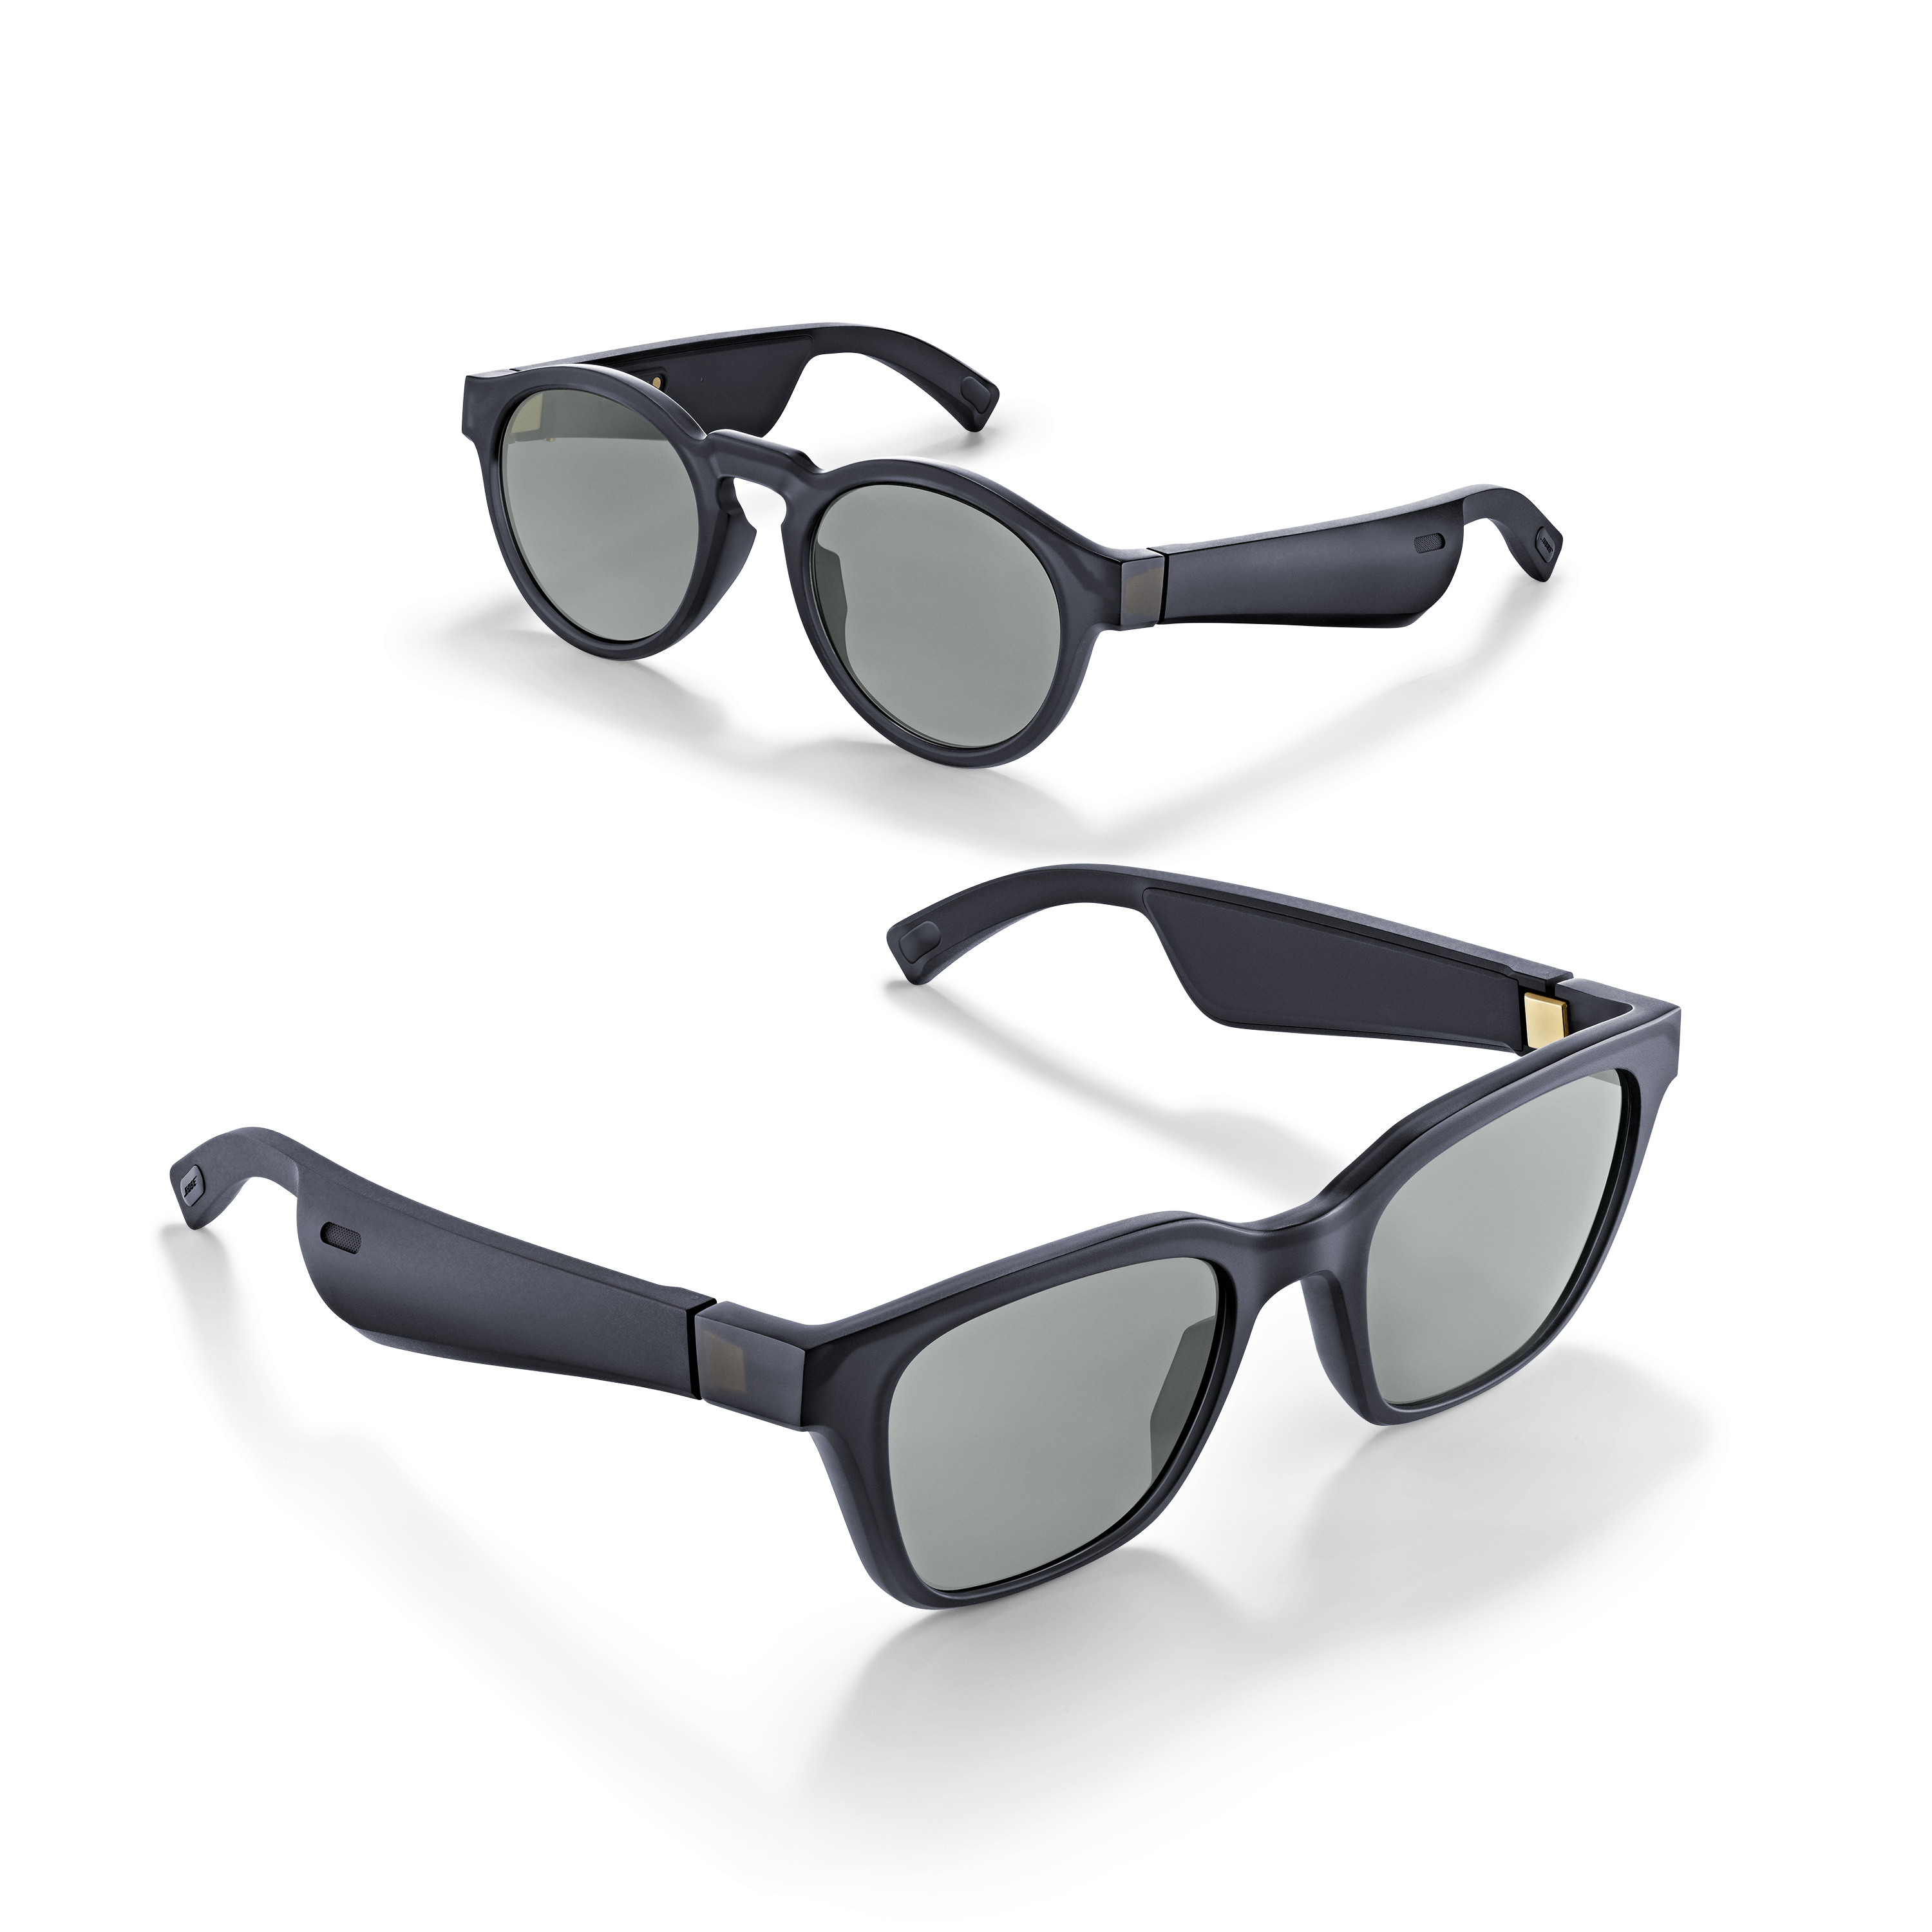 df2b541224 The Frames will be available in two styles when they hit U.S. stores in  January. They ll arrive in other markets in the spring.